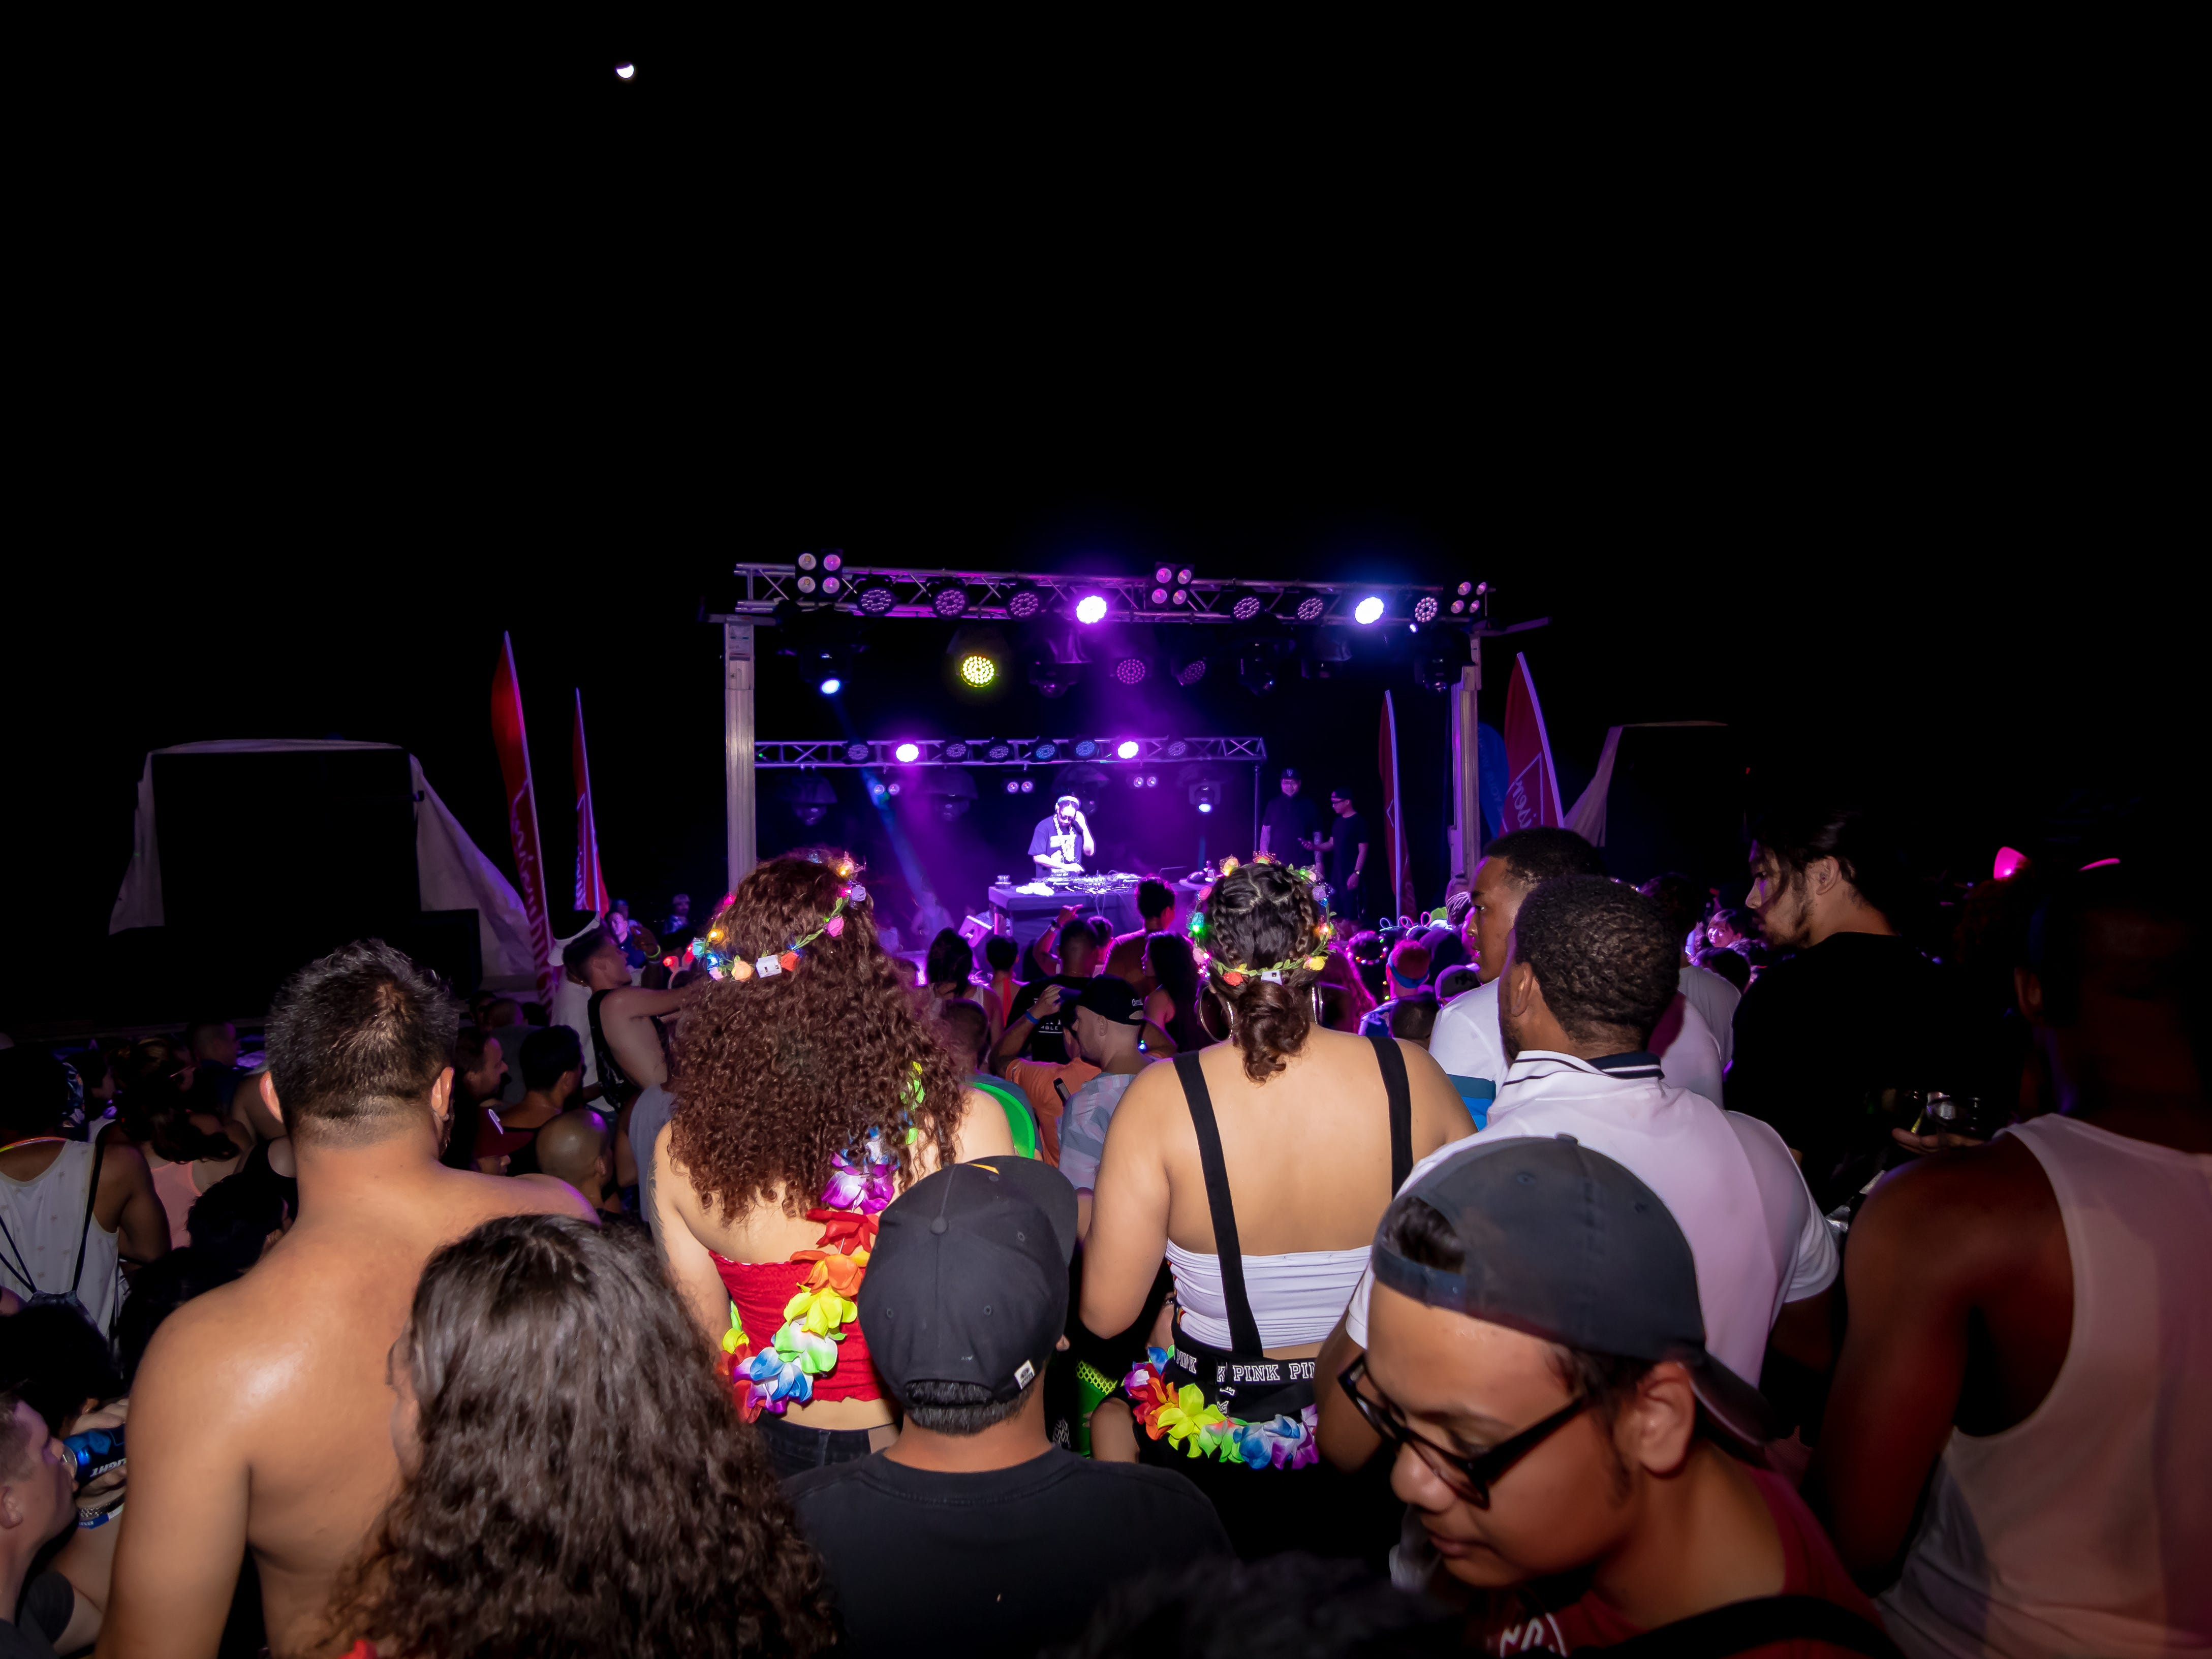 Lil Jon performs to the crowd at the Beach Bar in Tumon during the neon-themed beach festival on May 11.